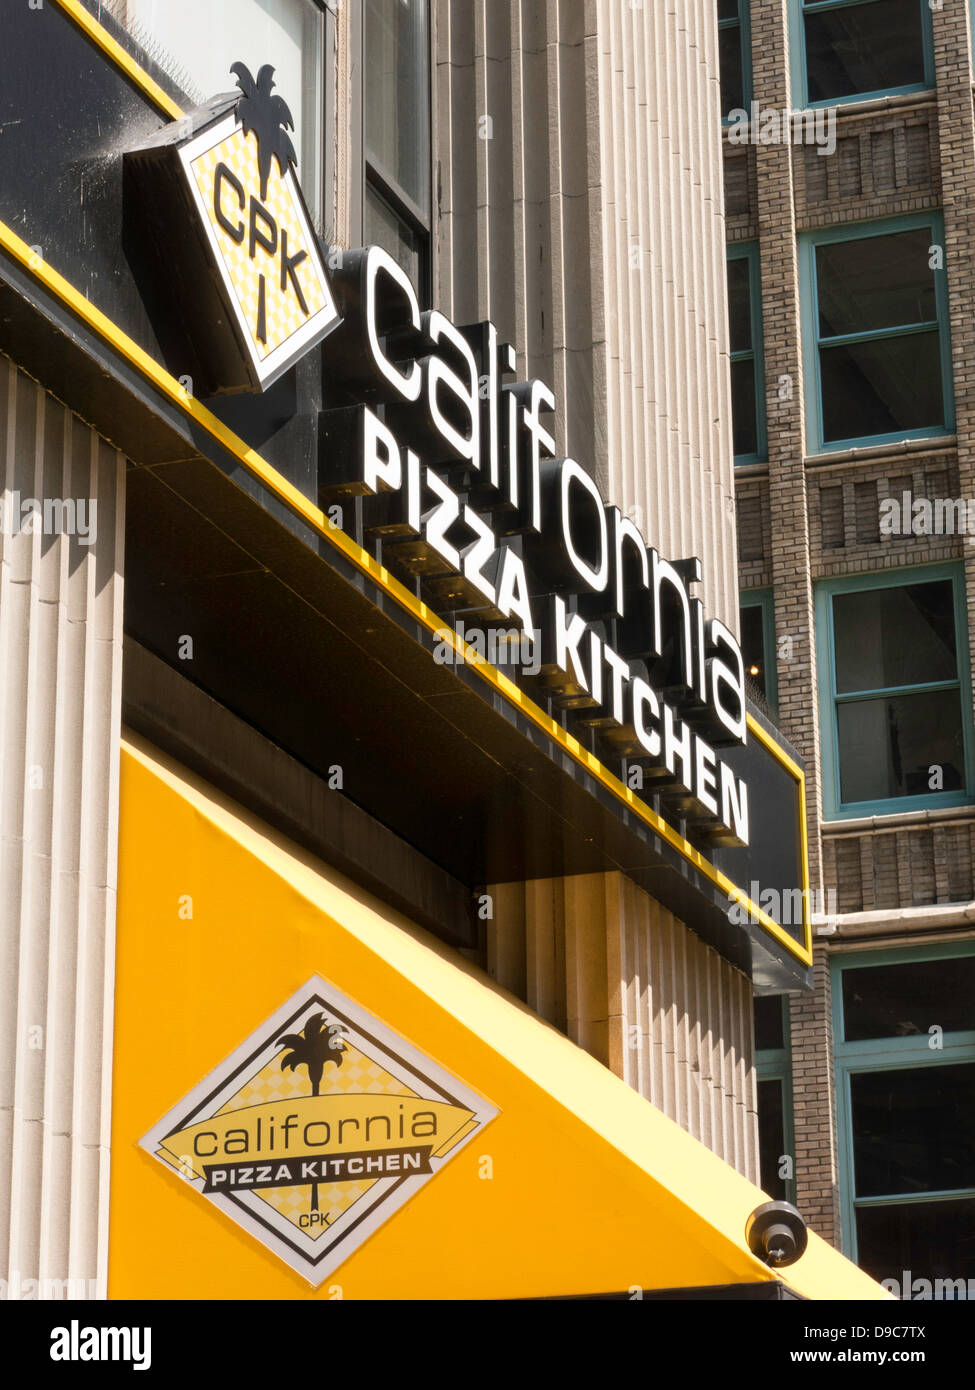 California Pizza Kitchen Stockfotos & California Pizza Kitchen ...